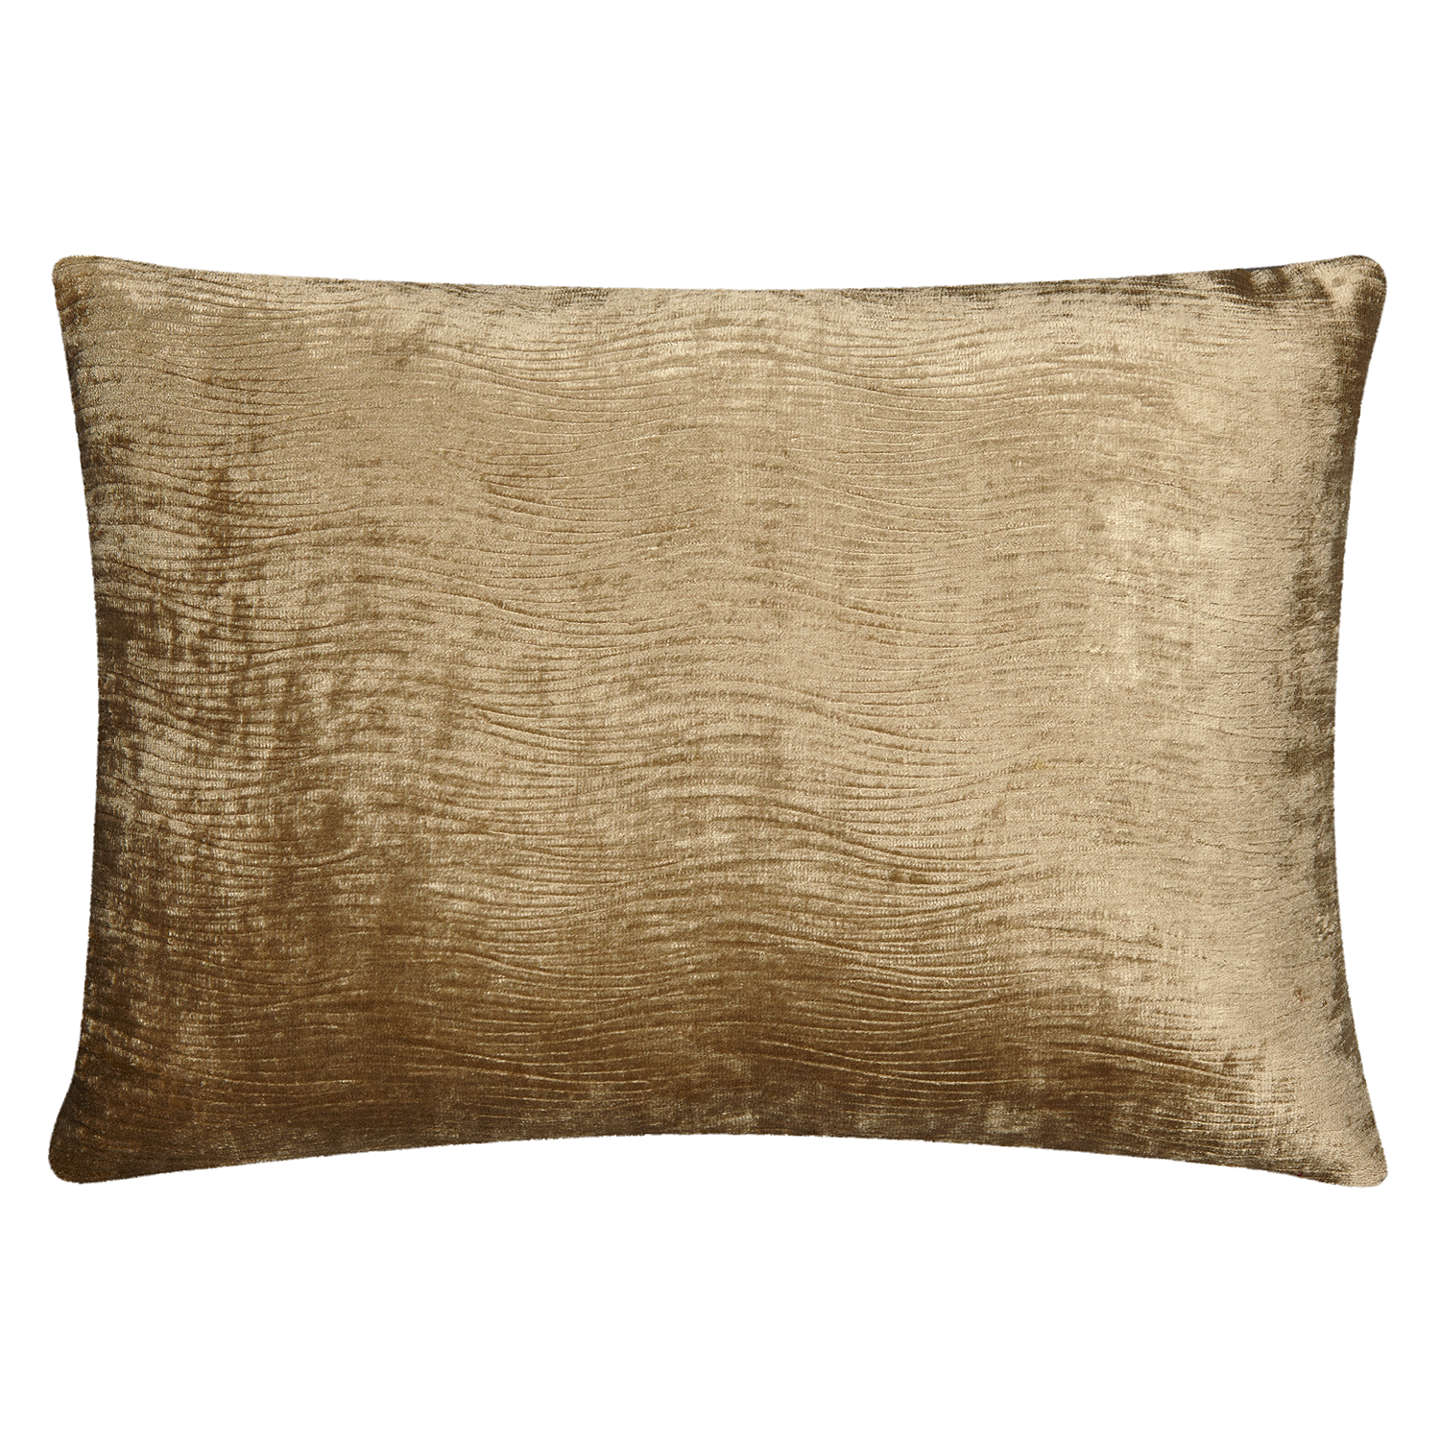 BuyHarlequin Arkona Velvet Cushion, Parchment Online at johnlewis.com